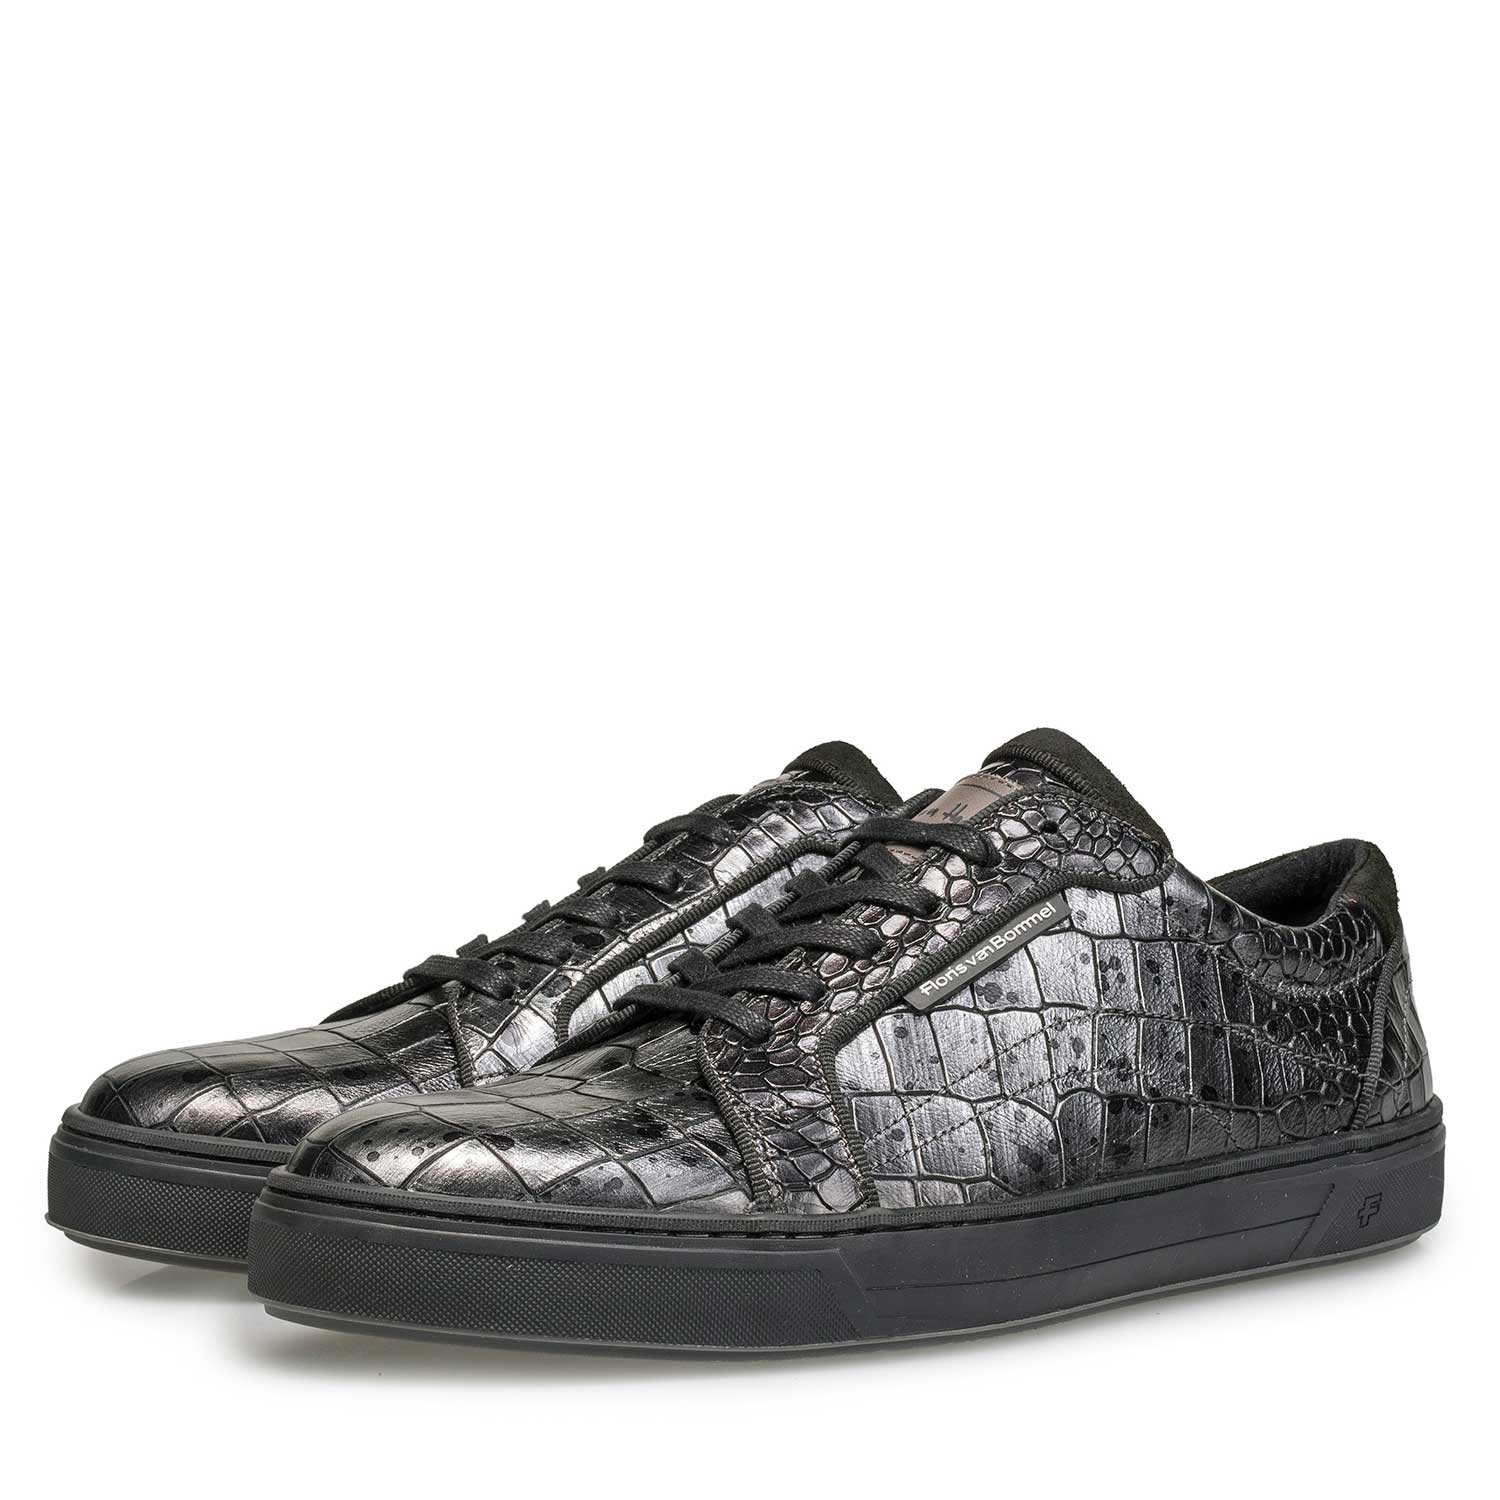 13214/03 - Leather sneaker with croco print